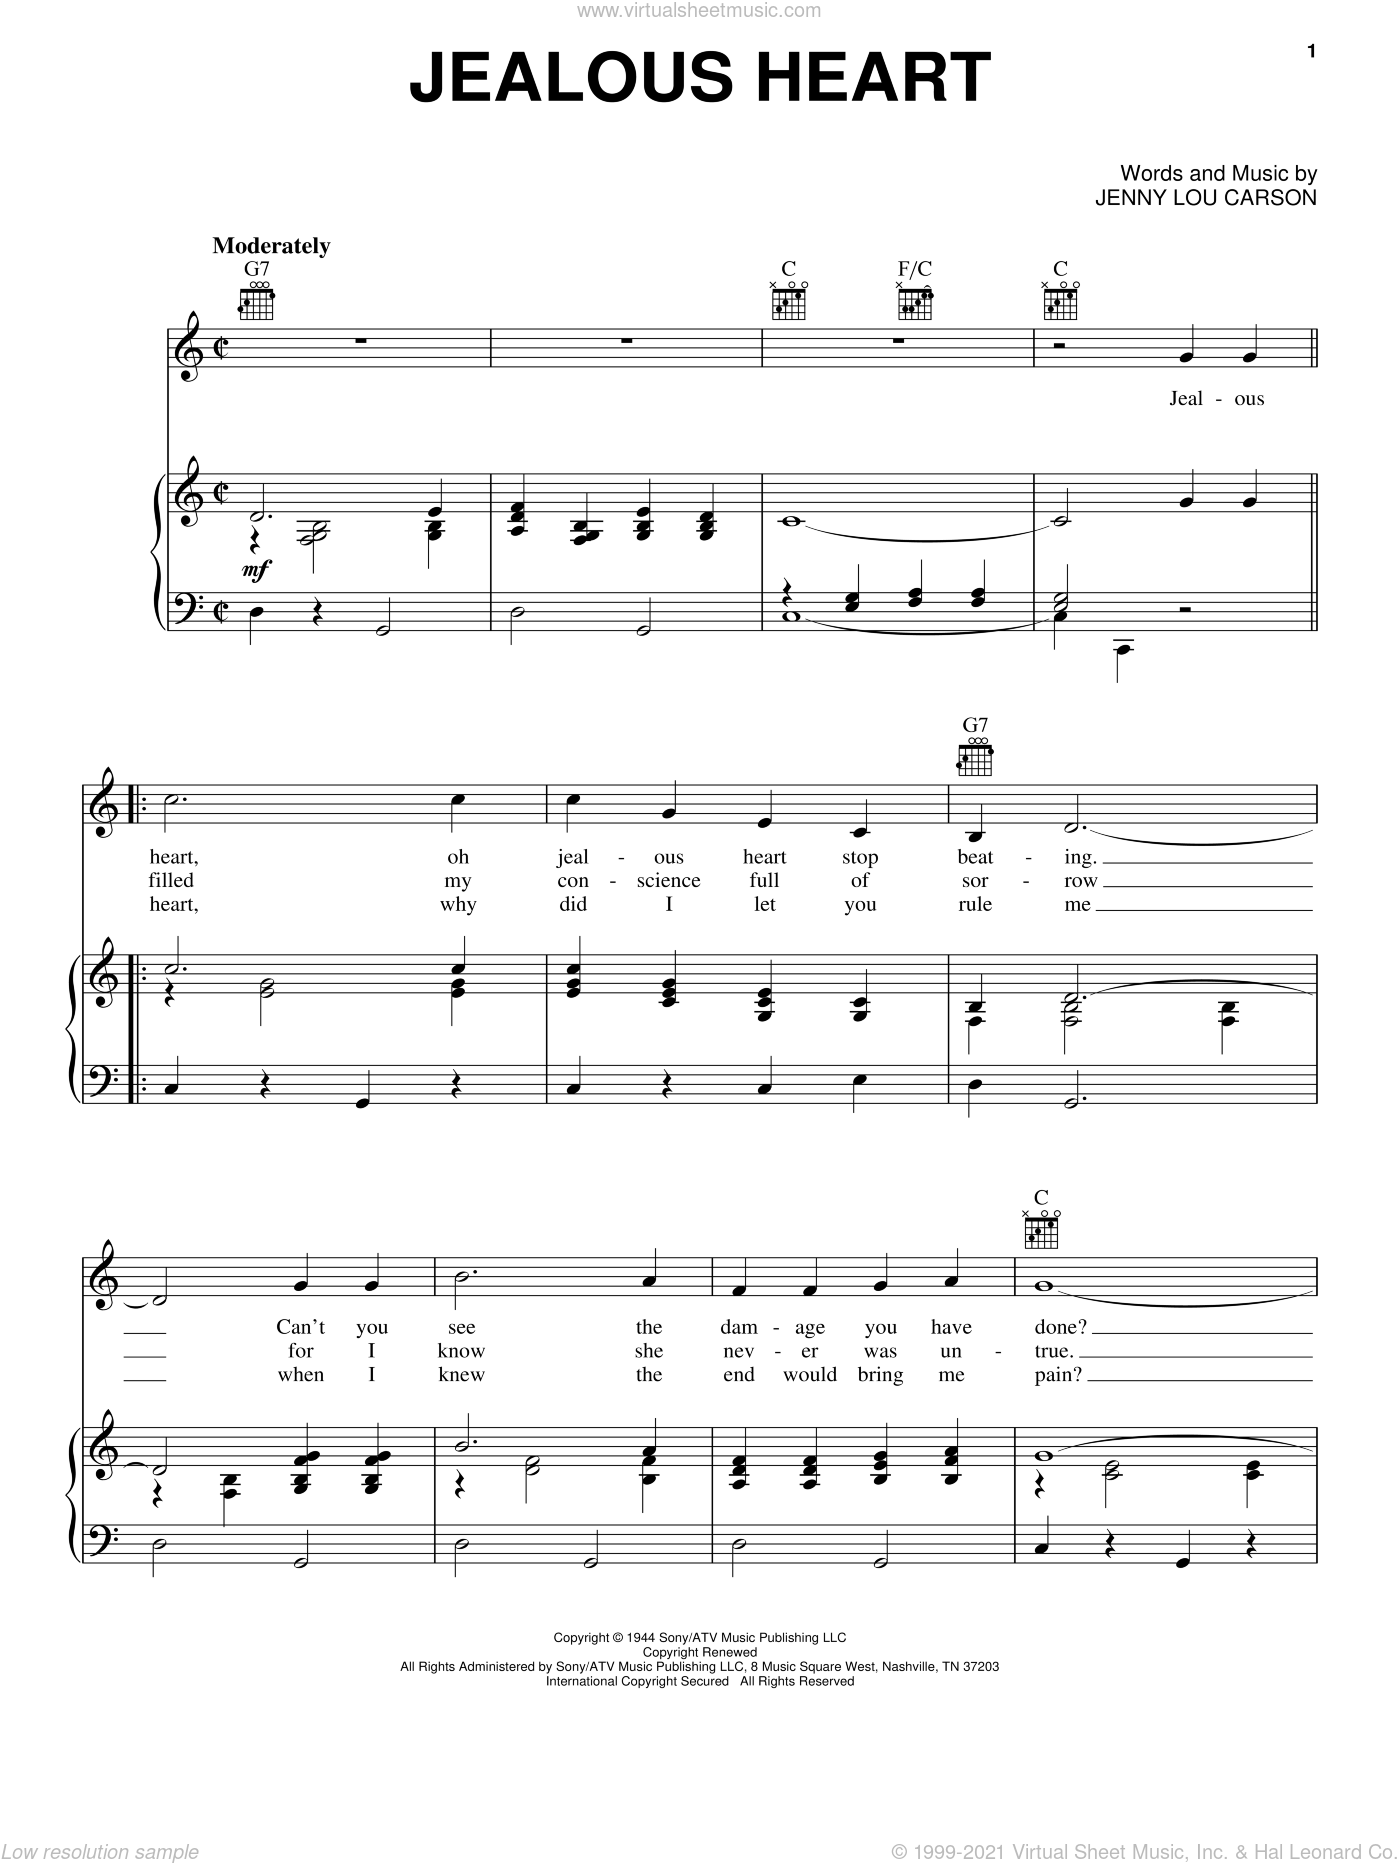 Jealous Heart sheet music for voice, piano or guitar by Tex Ritter and Jenny Lou Carson, intermediate skill level